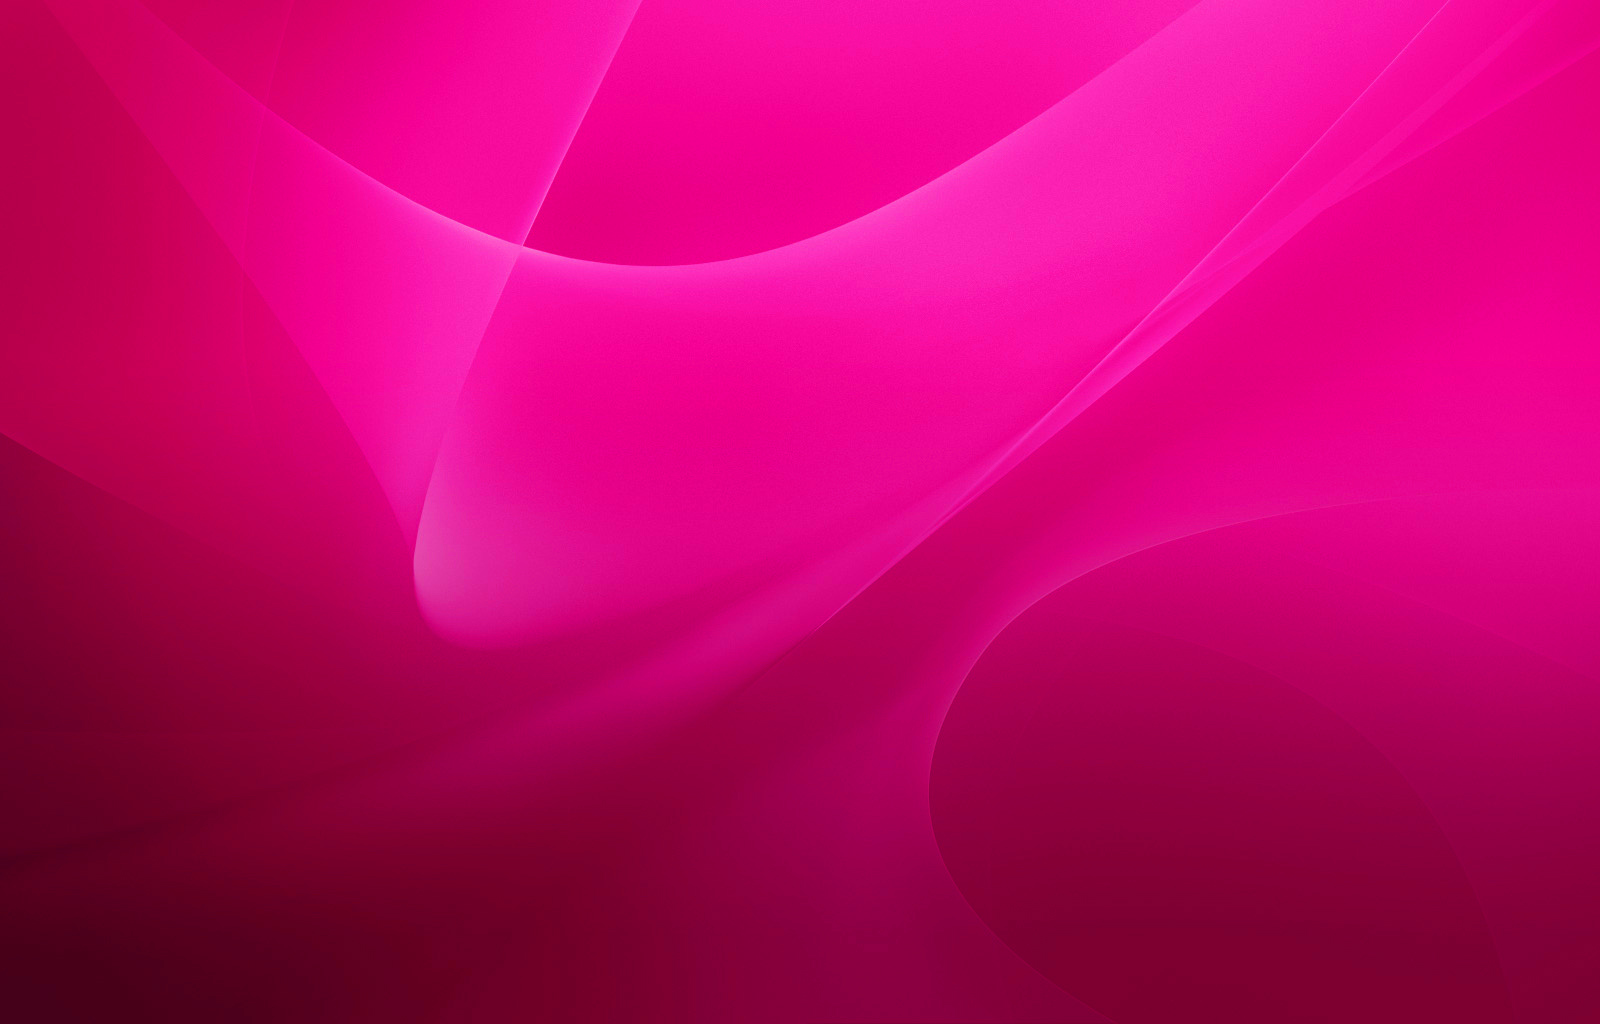 download Wallpaper Pink Full HD 1080p Best HD Pink